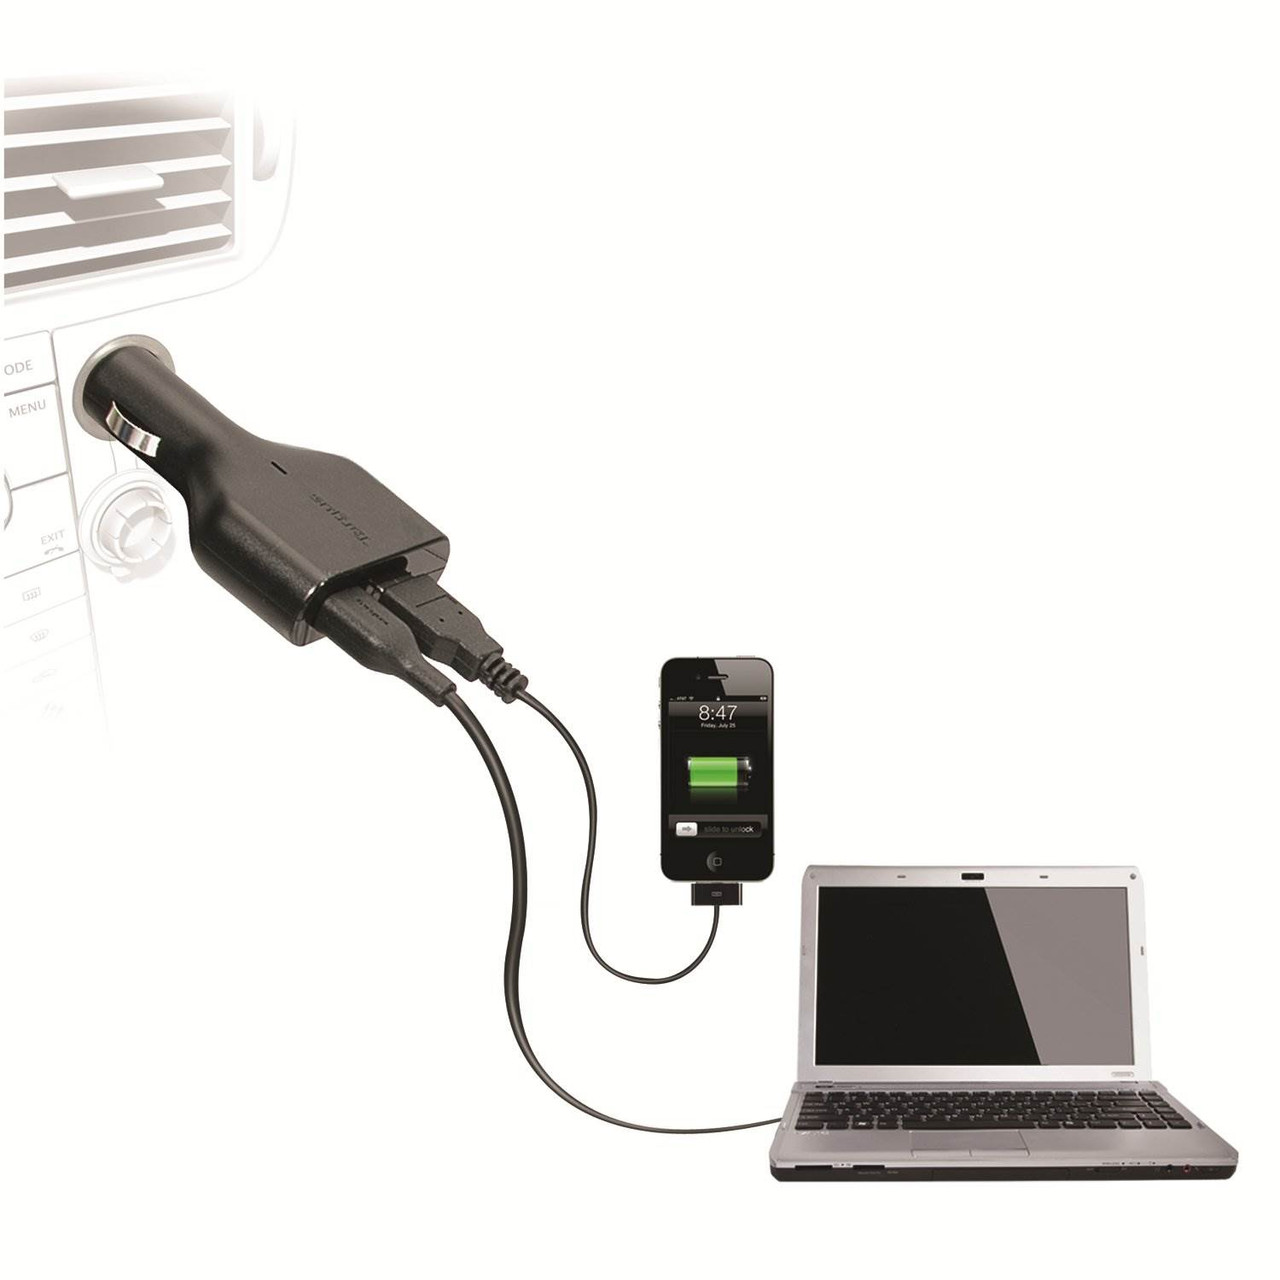 Product image for Targus Laptop Car Charger with USB Fast Charging Port | CX Computer Superstore